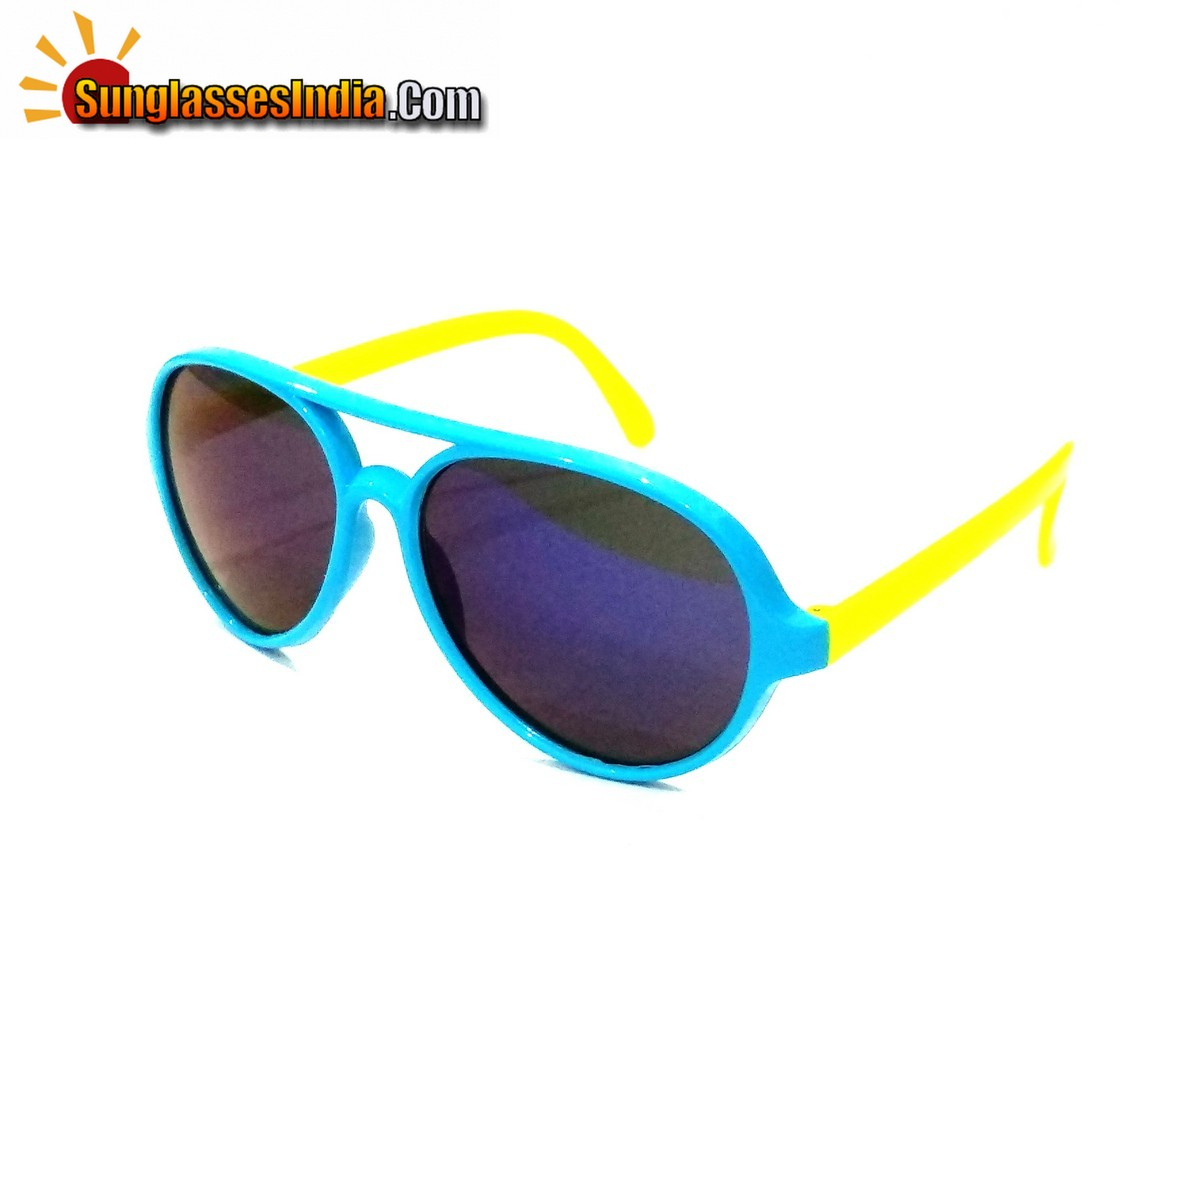 Kids Fashion Sunglasses TKS006BlueYellow